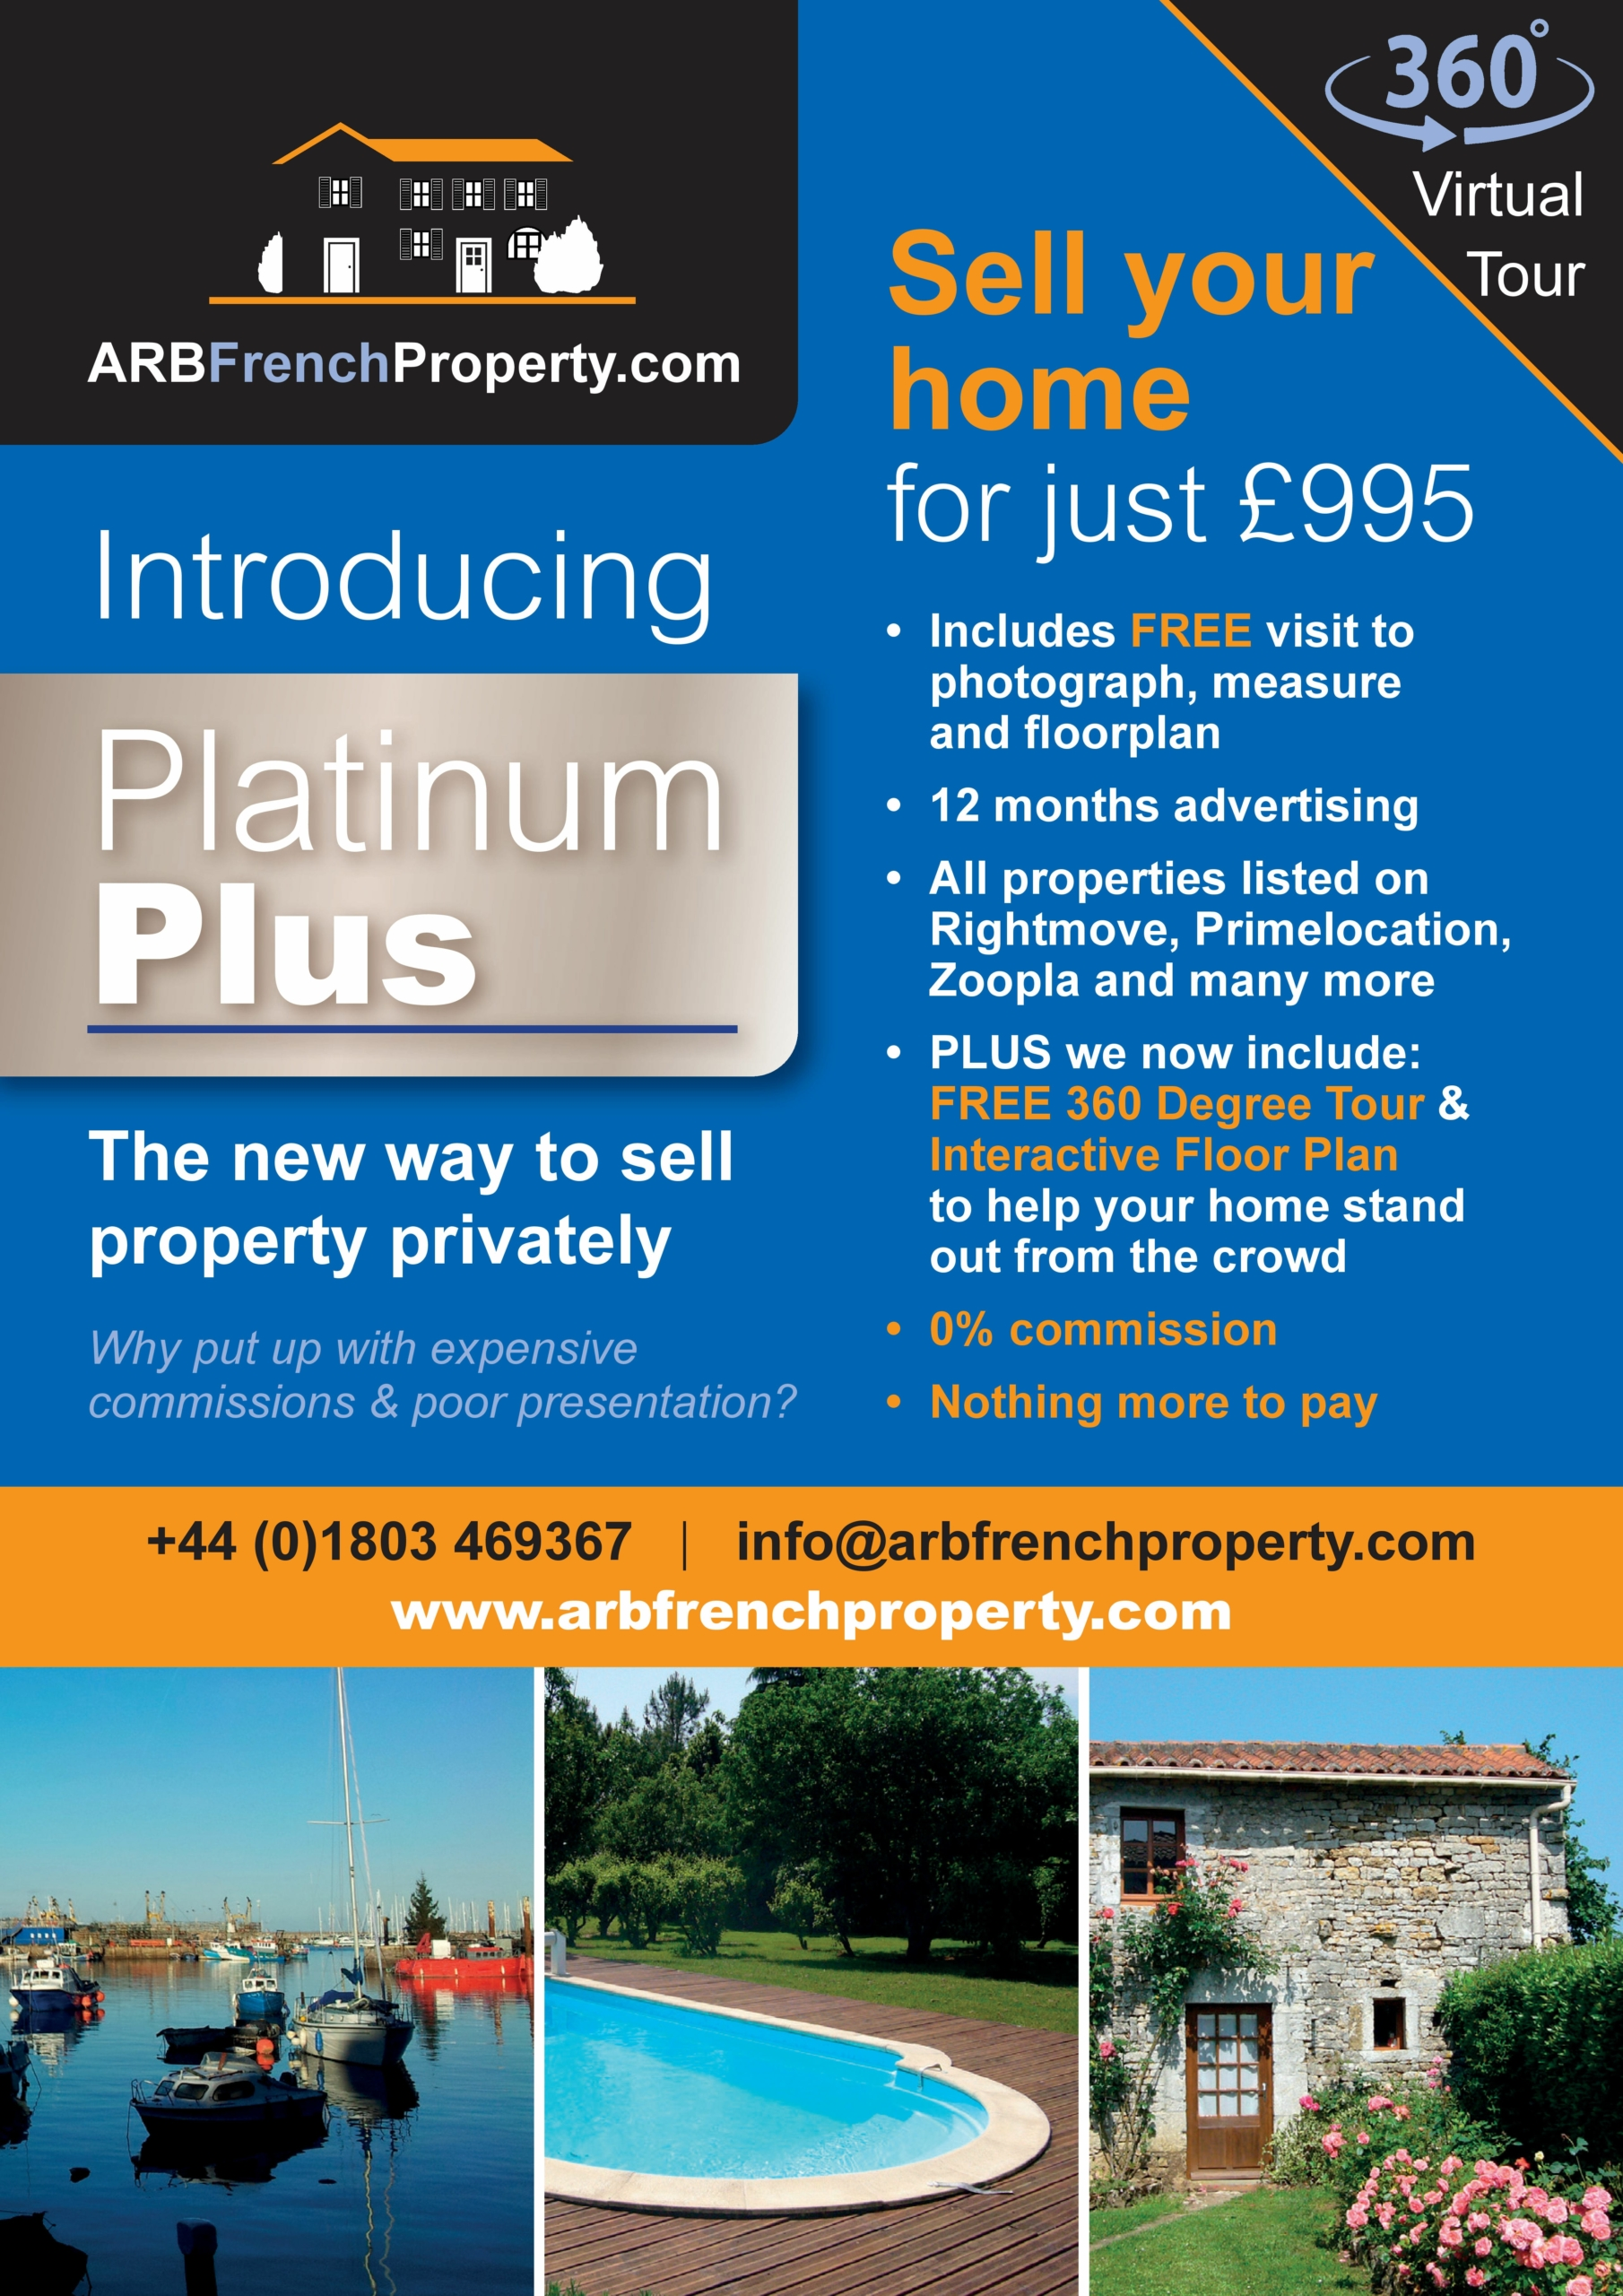 ARB French Property